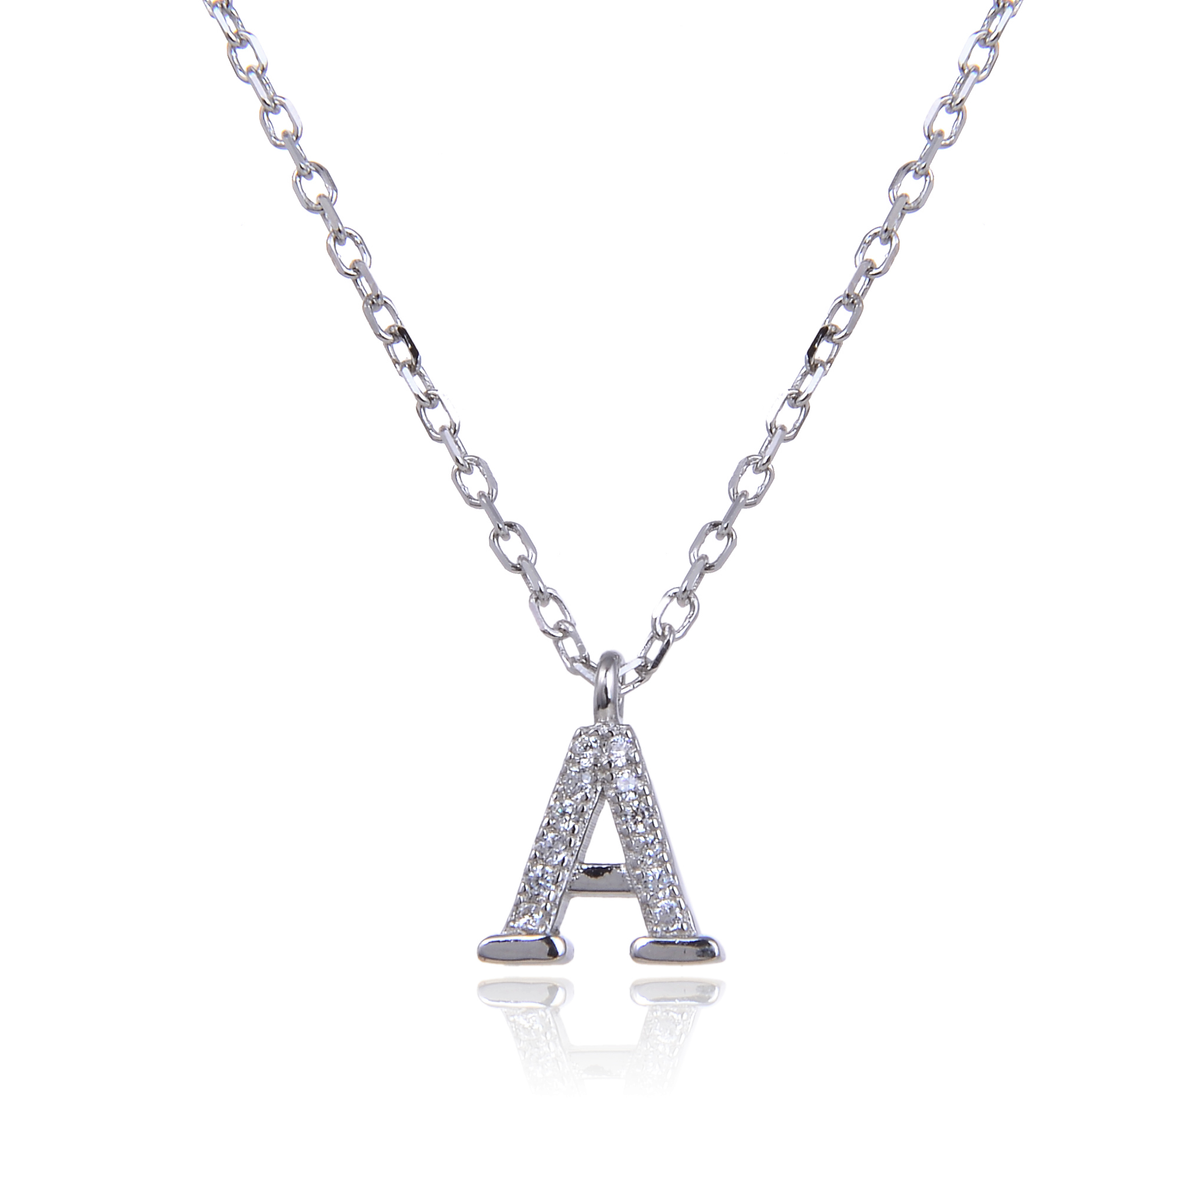 Letter A Necklace - penelope-it.com